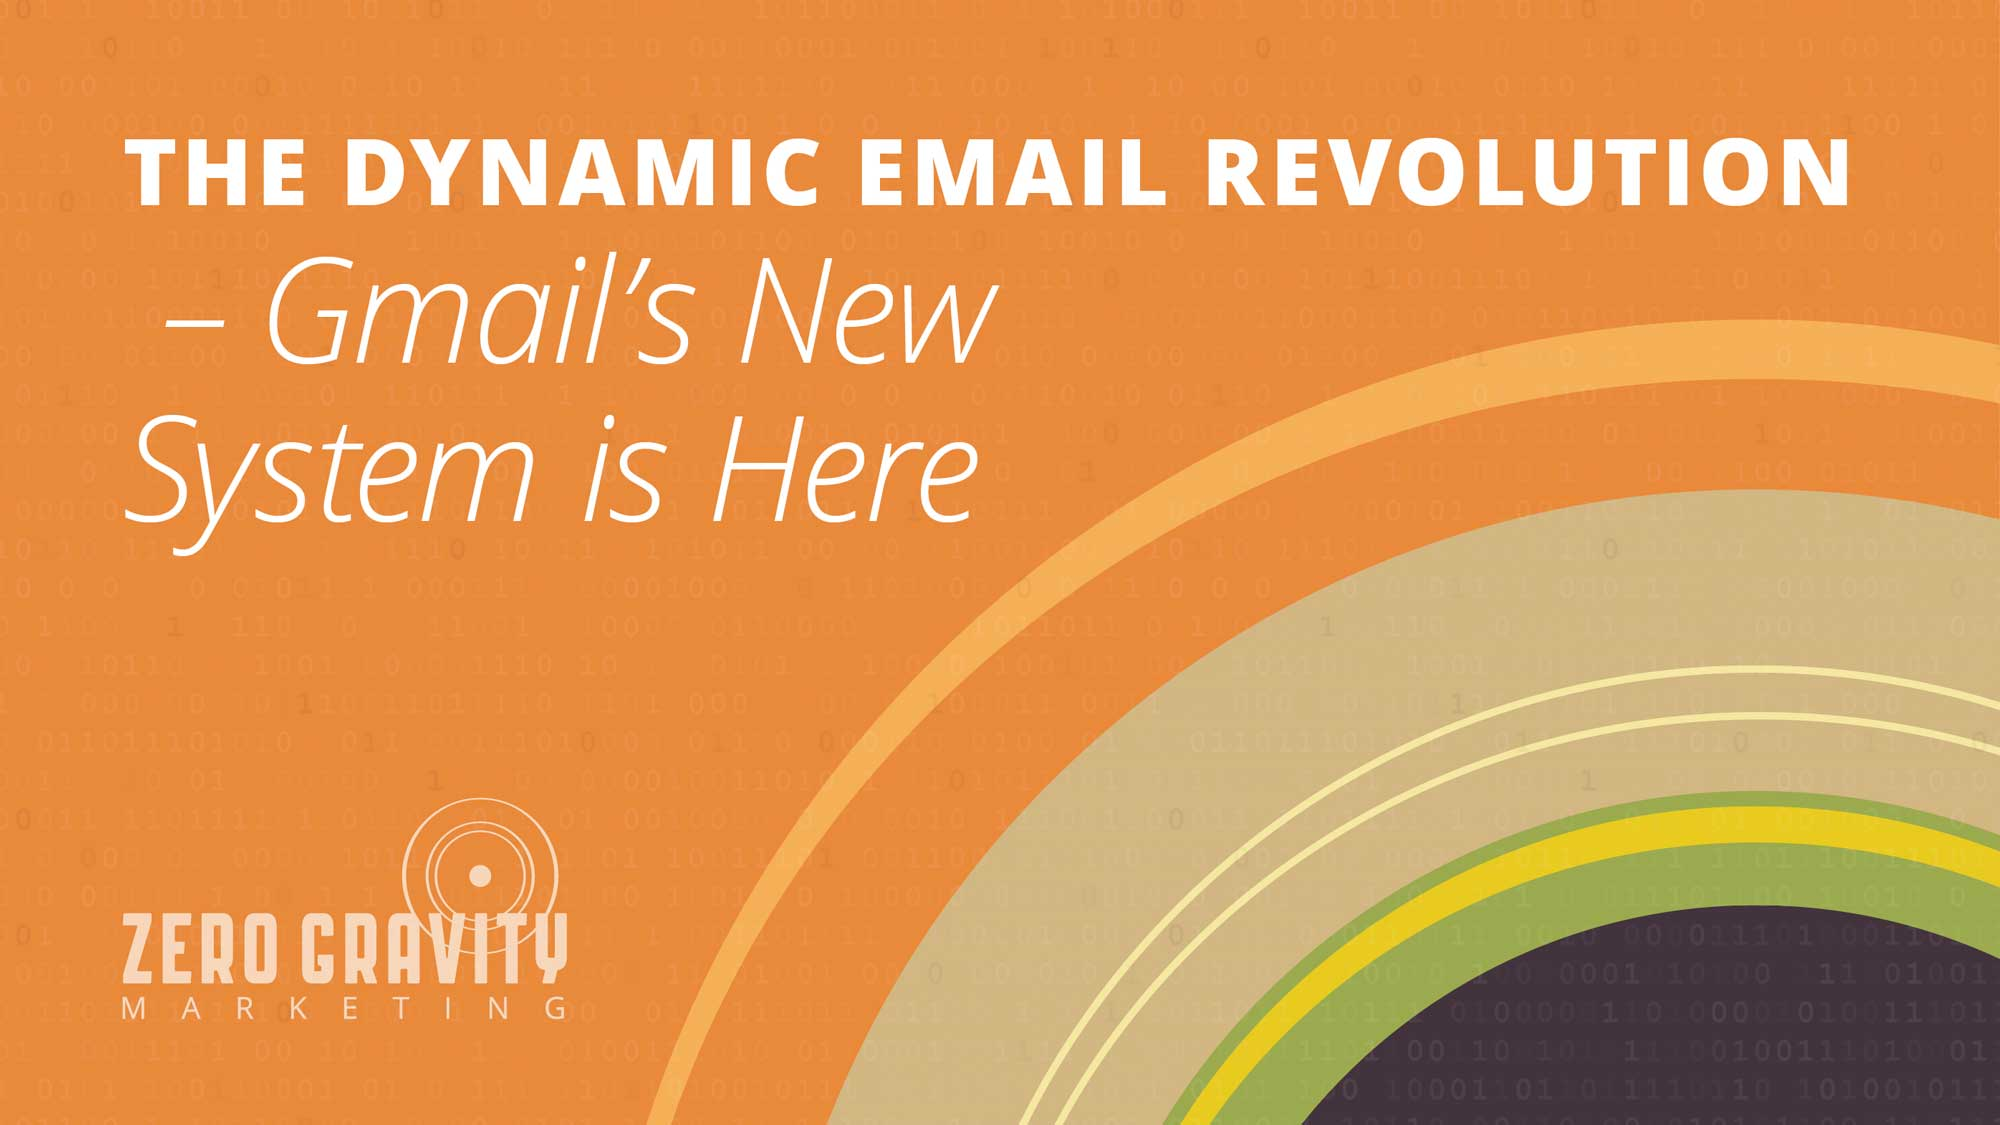 The Dynamic Email Revolution - Gmail's New System is Here